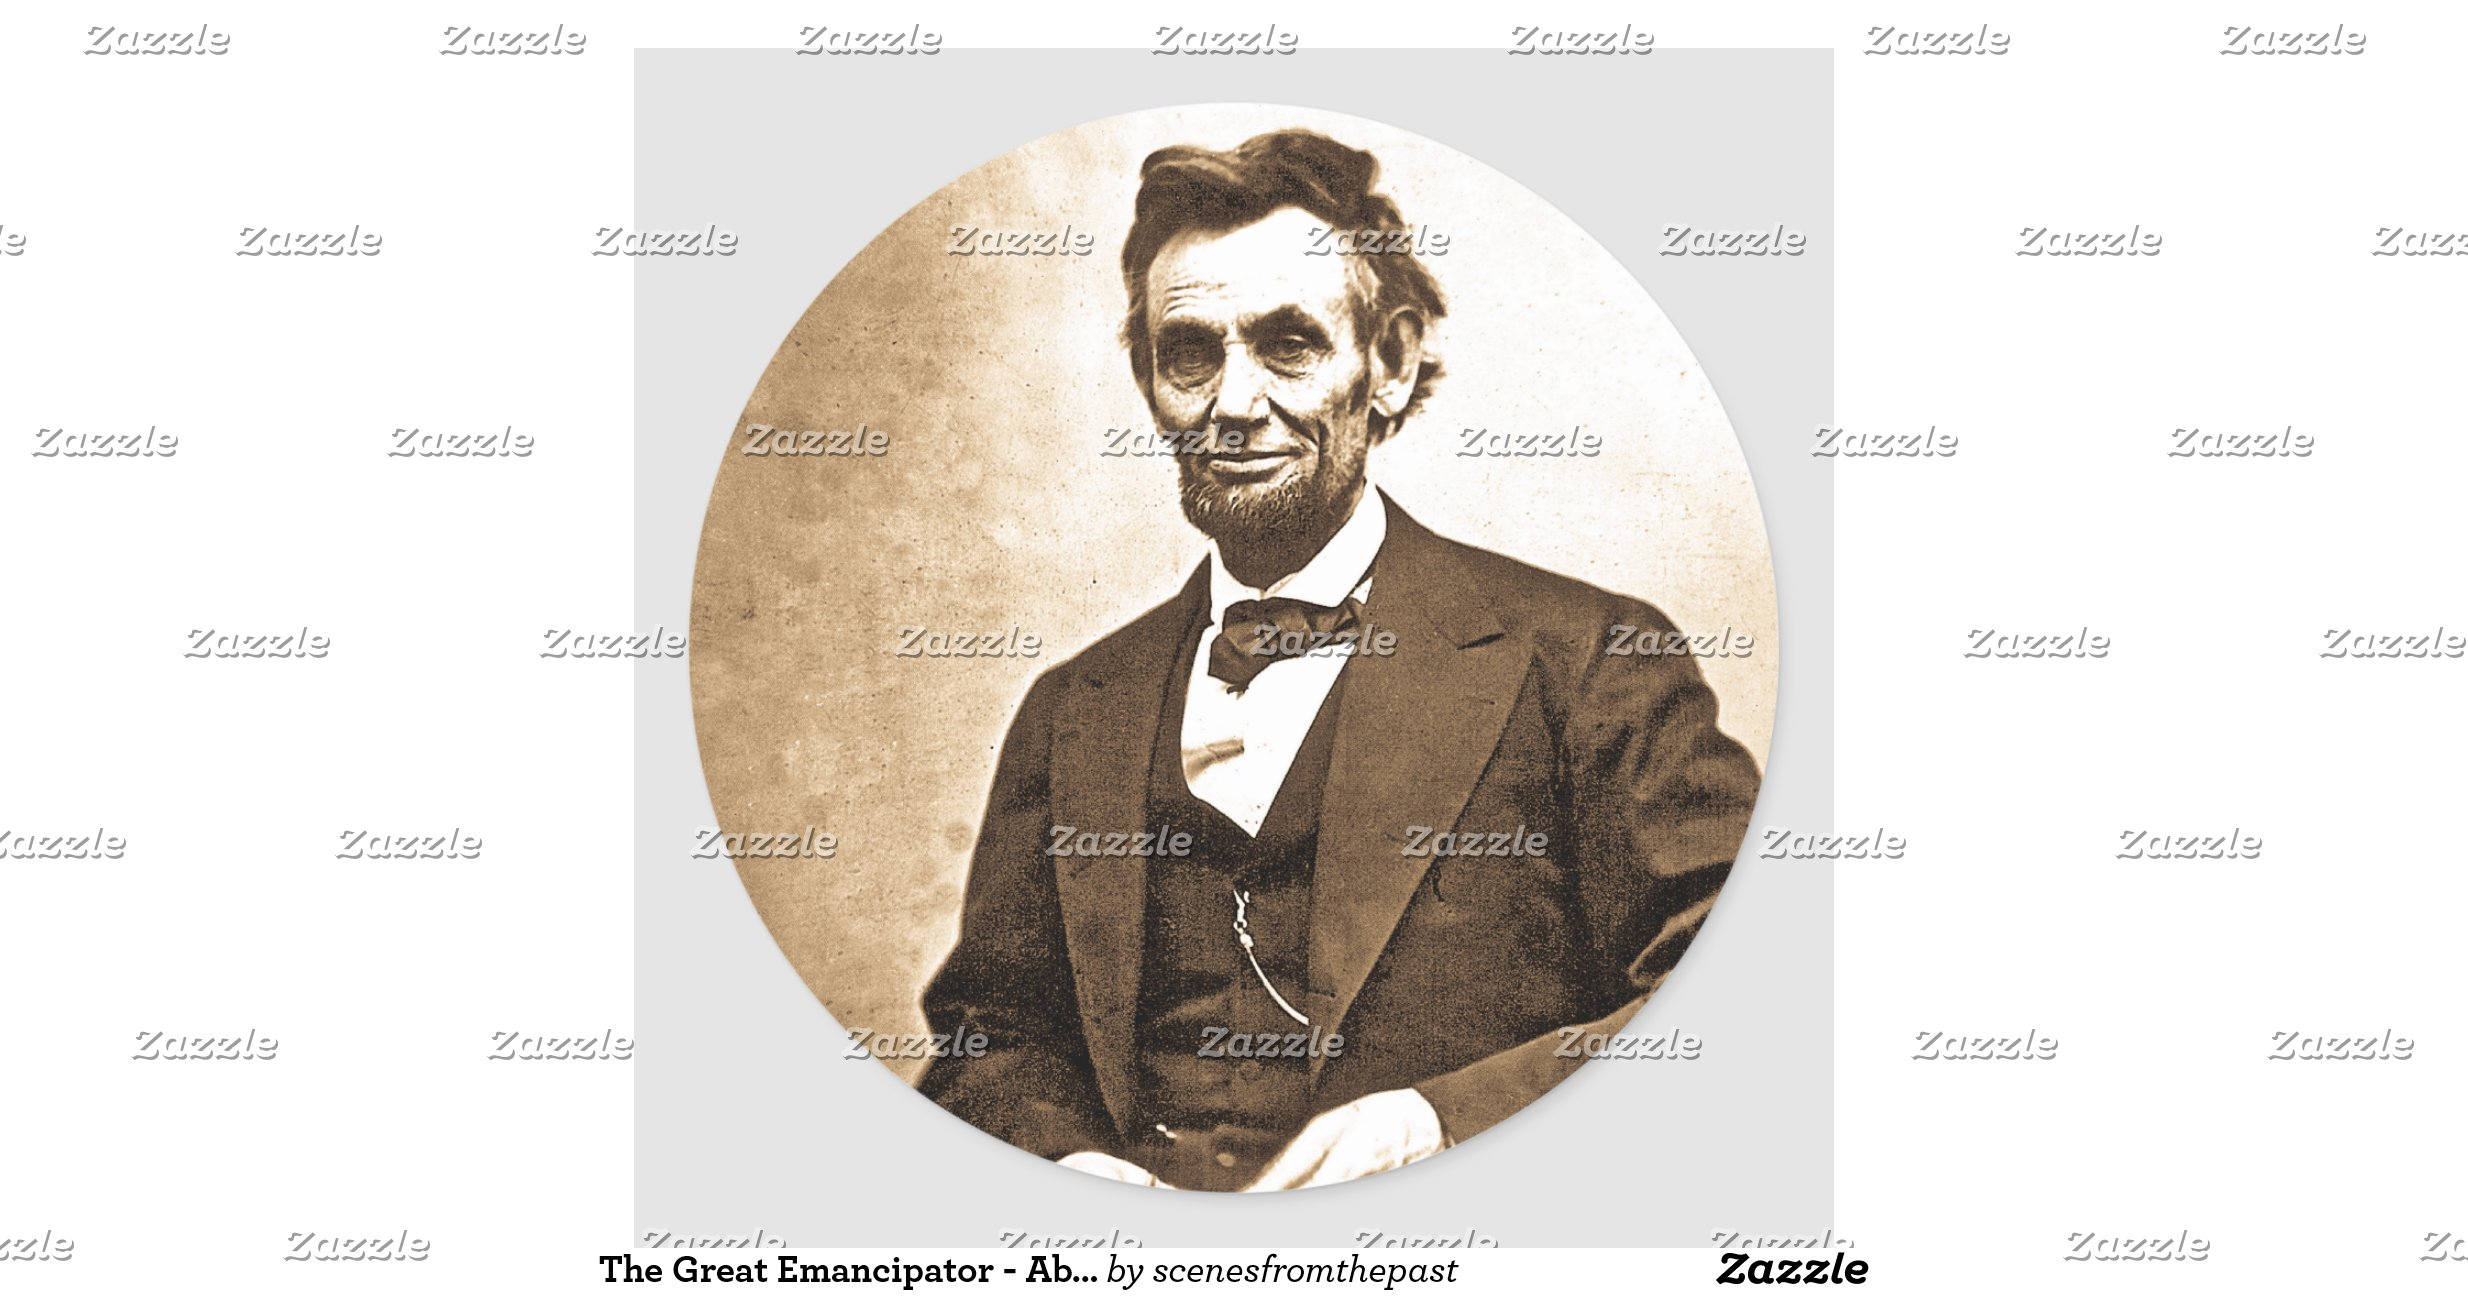 was lincoln truly the great emancipator Update: lincoln ordered infants into the army and popeye's secret fried chicken  recipe has  the great emancipator owned slaves  that robert e lee  fathered an african american child or that he was really a martian.